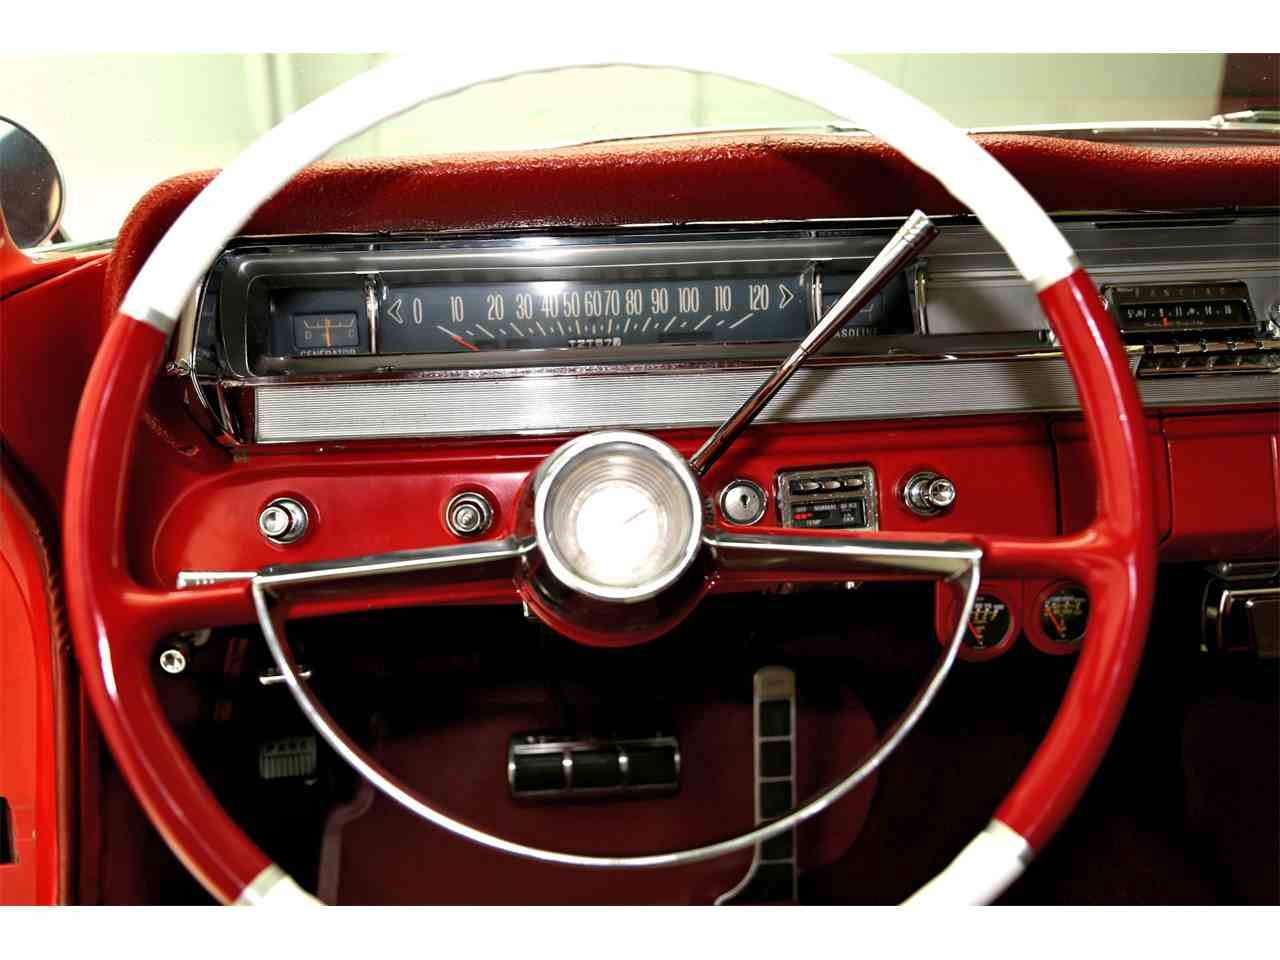 Large Picture of '62 Pontiac Catalina located in Des Moines Iowa - $29,900.00 Offered by American Dream Machines - JRF9